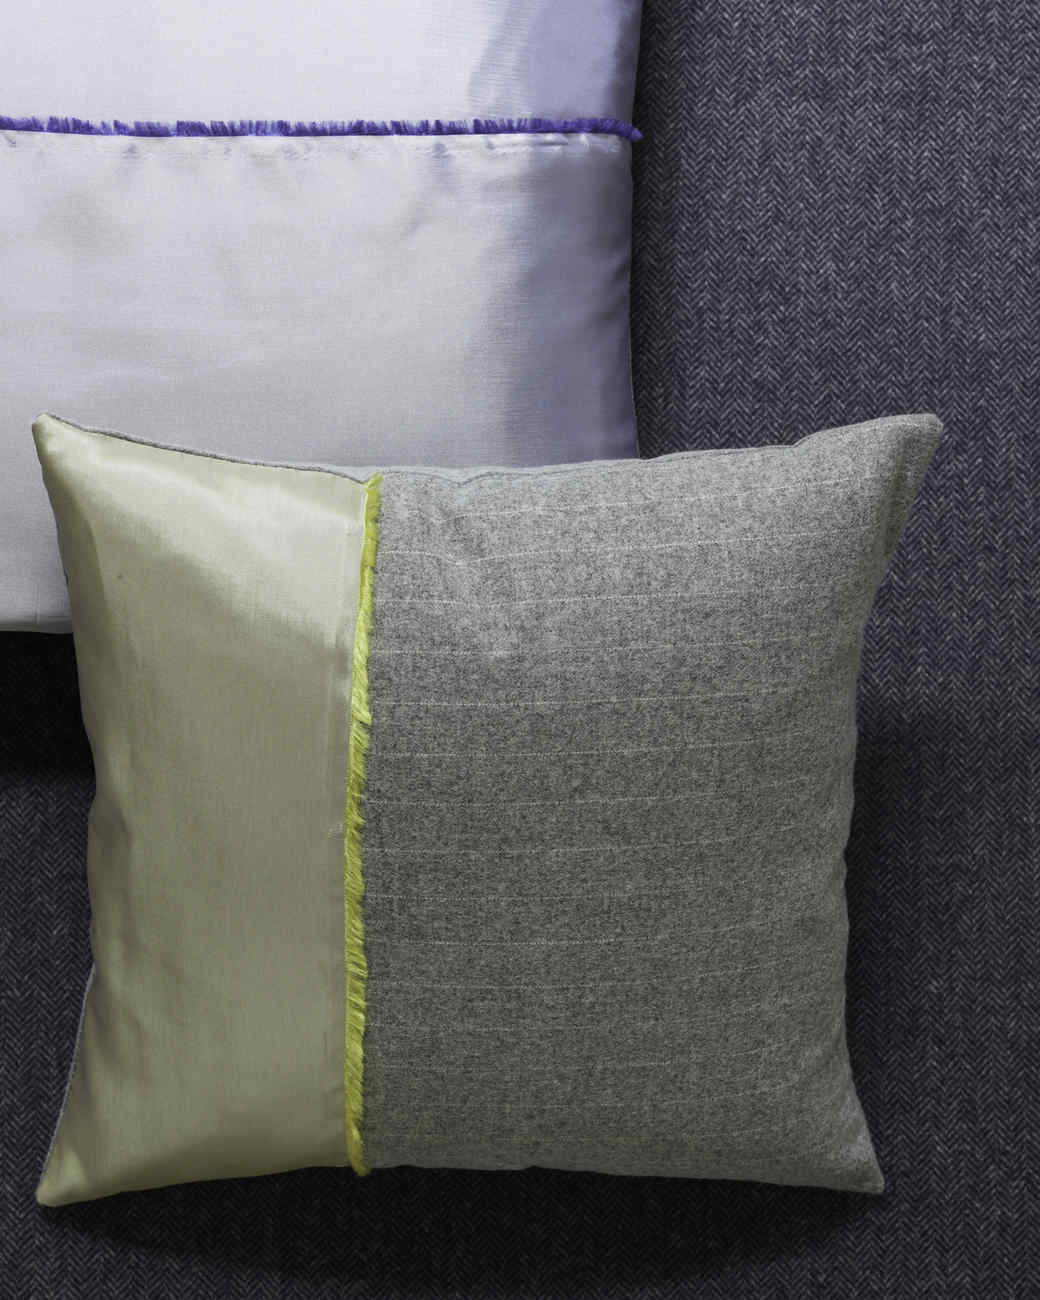 26 Pillow Projects That Are Perfectly Cozy And Comfortable